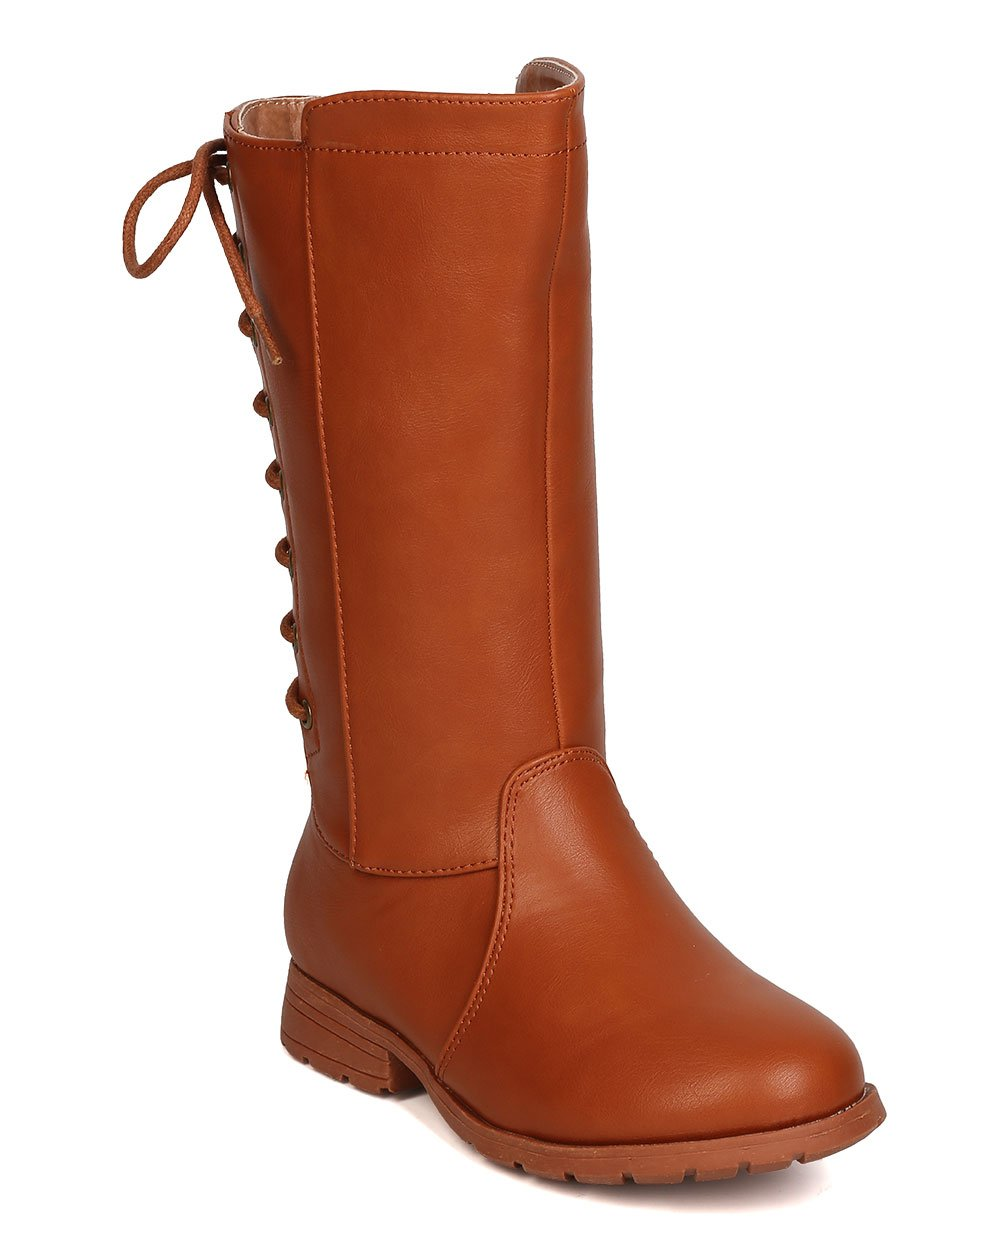 Girls Leatherette Back Lace Up Tall Riding Boot GB45 - Cognac (Size: Big Kid 3) by Little Angel (Image #1)